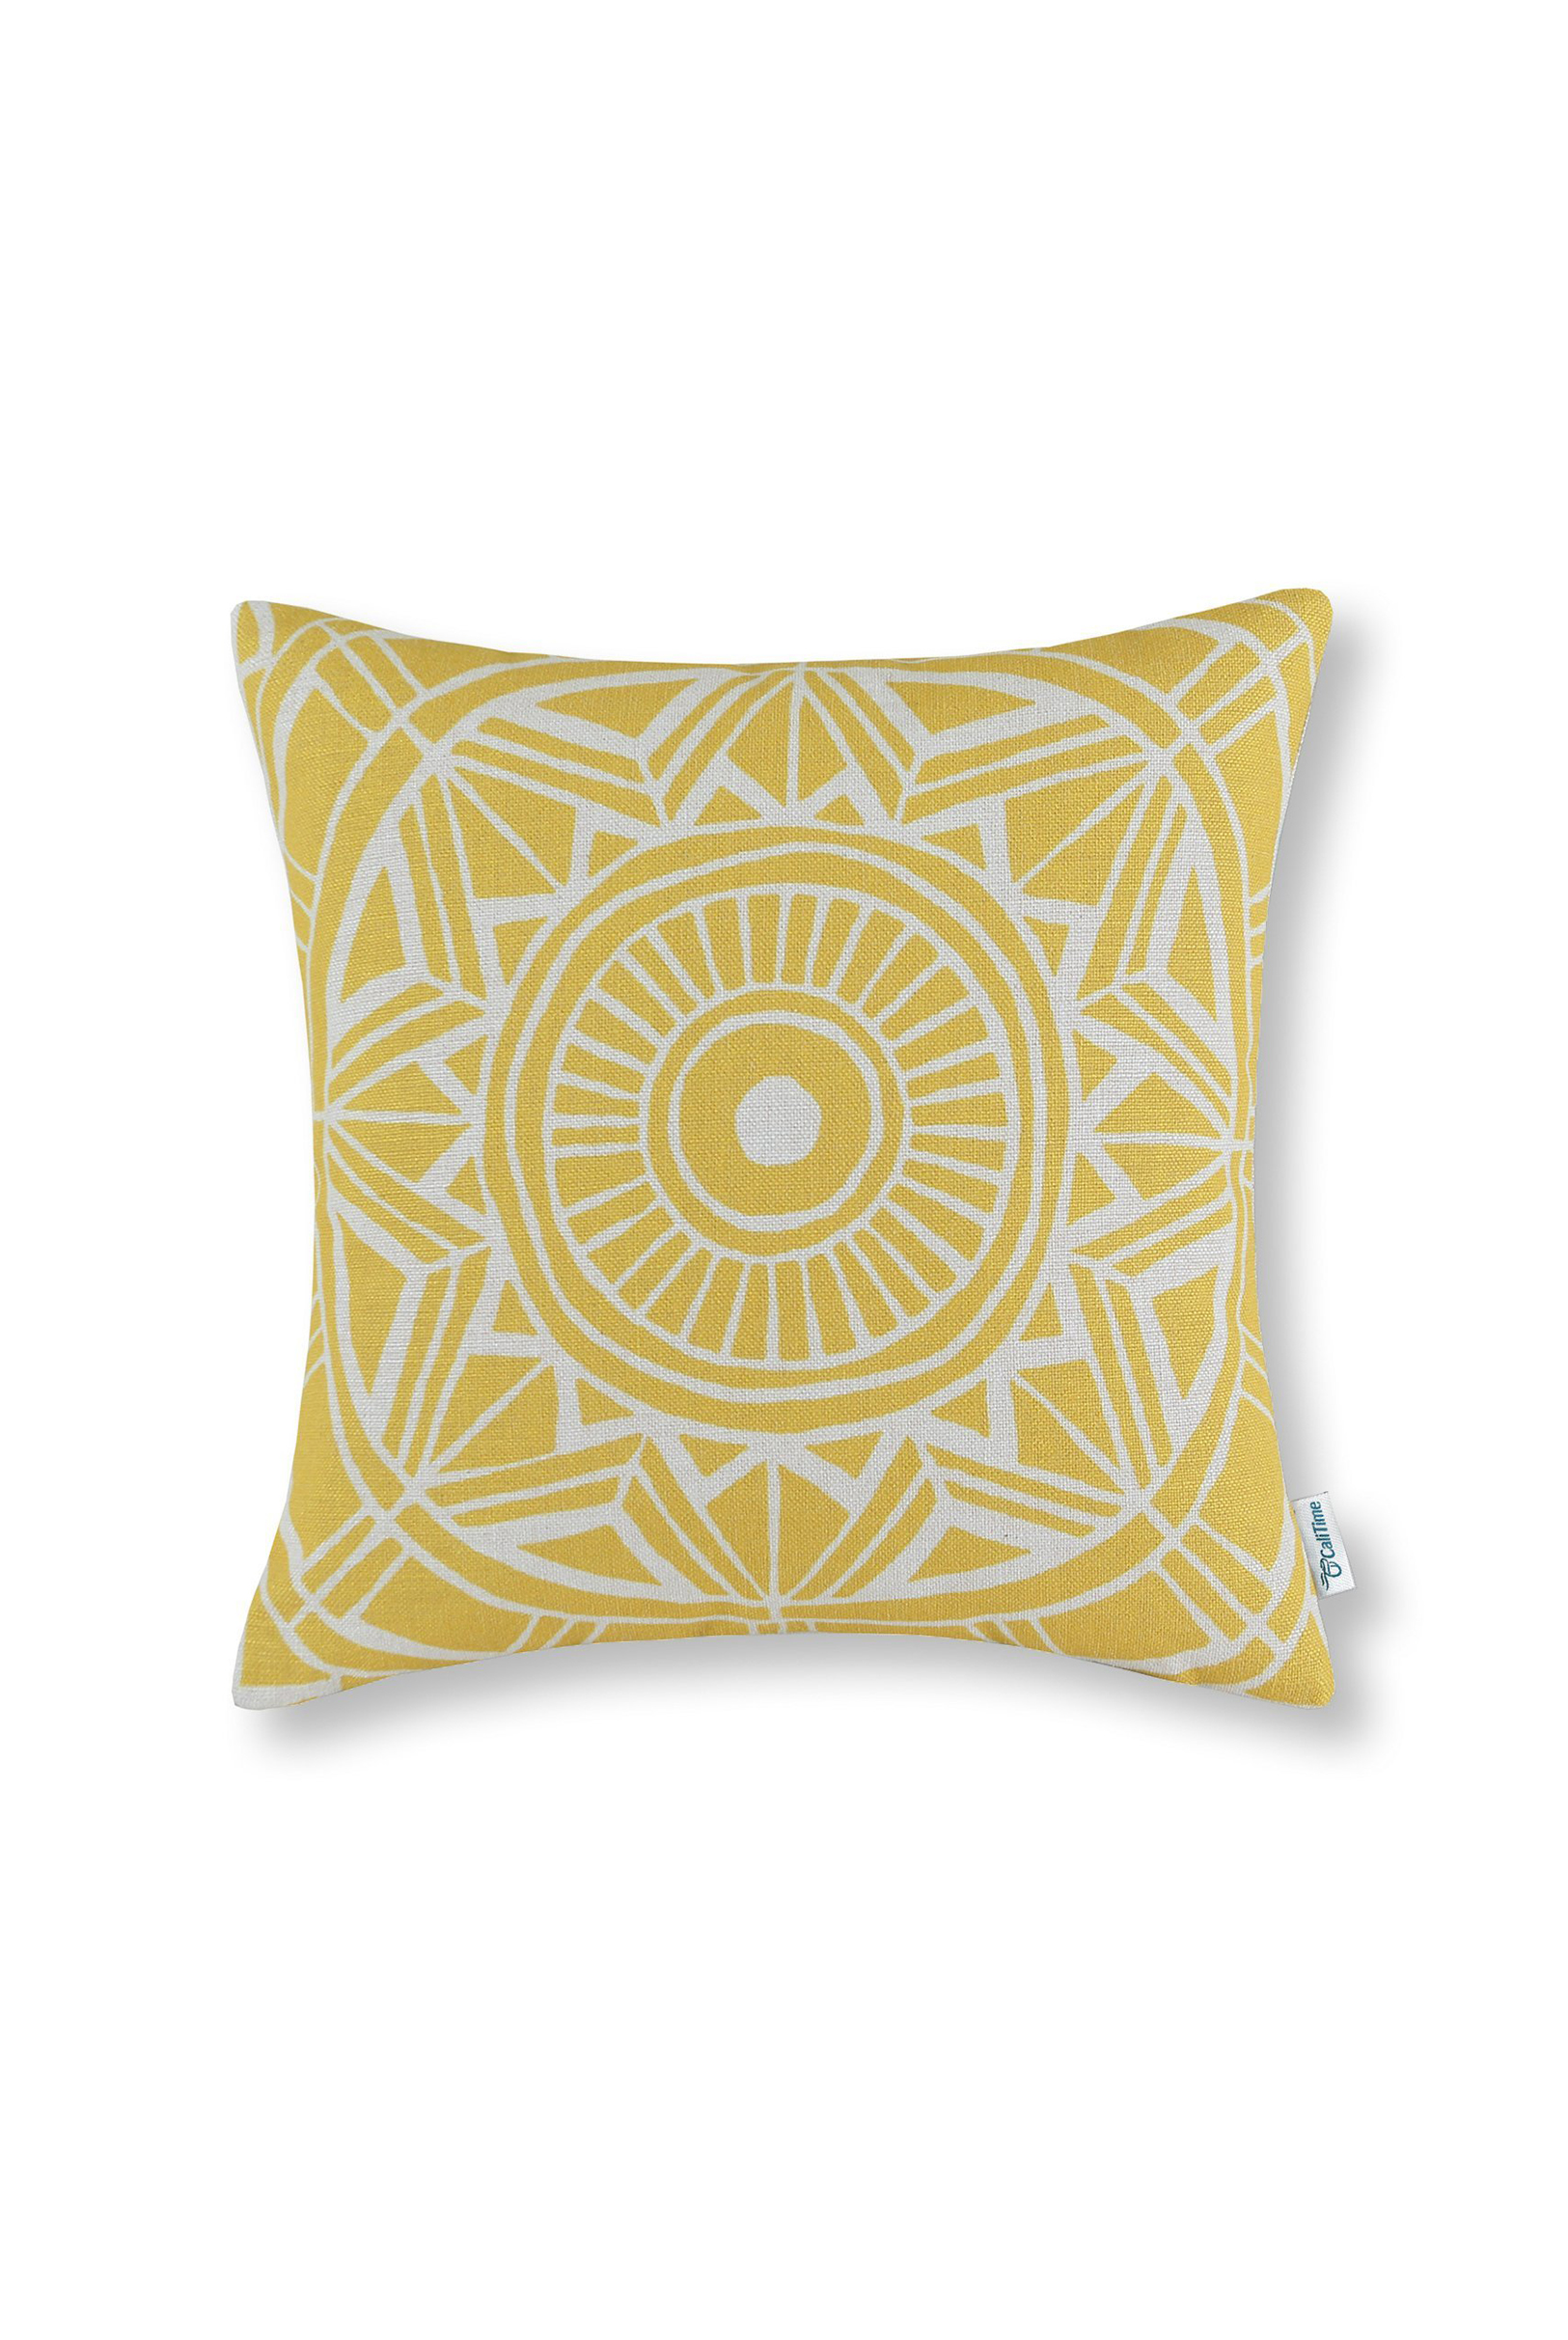 Throw-Pillow-Case-Yellow.jpg